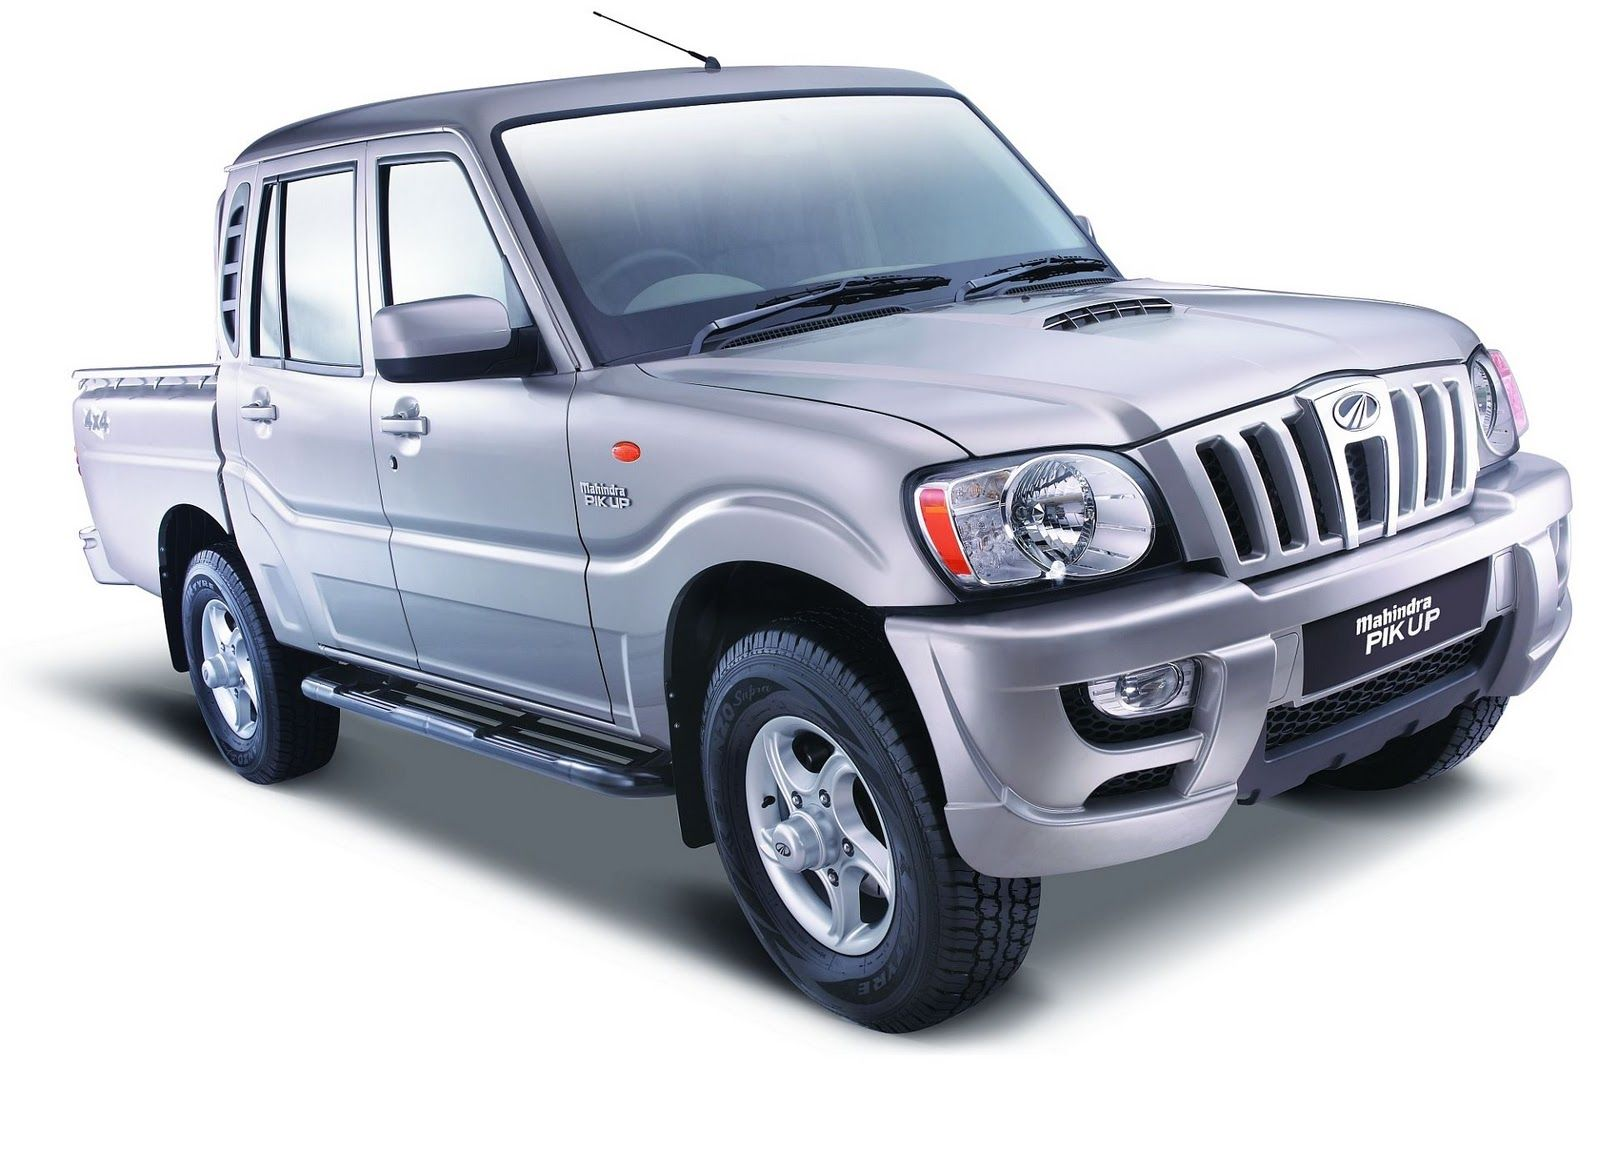 Mahindra bolero maxi truck price pickup trucks prices - Buy A Mahindra Bolero Maxi Truck Plus Bakkie In South Africa From Only R1199 Per Month Terms And Conditions Apply Automotive Pinterest Boleros